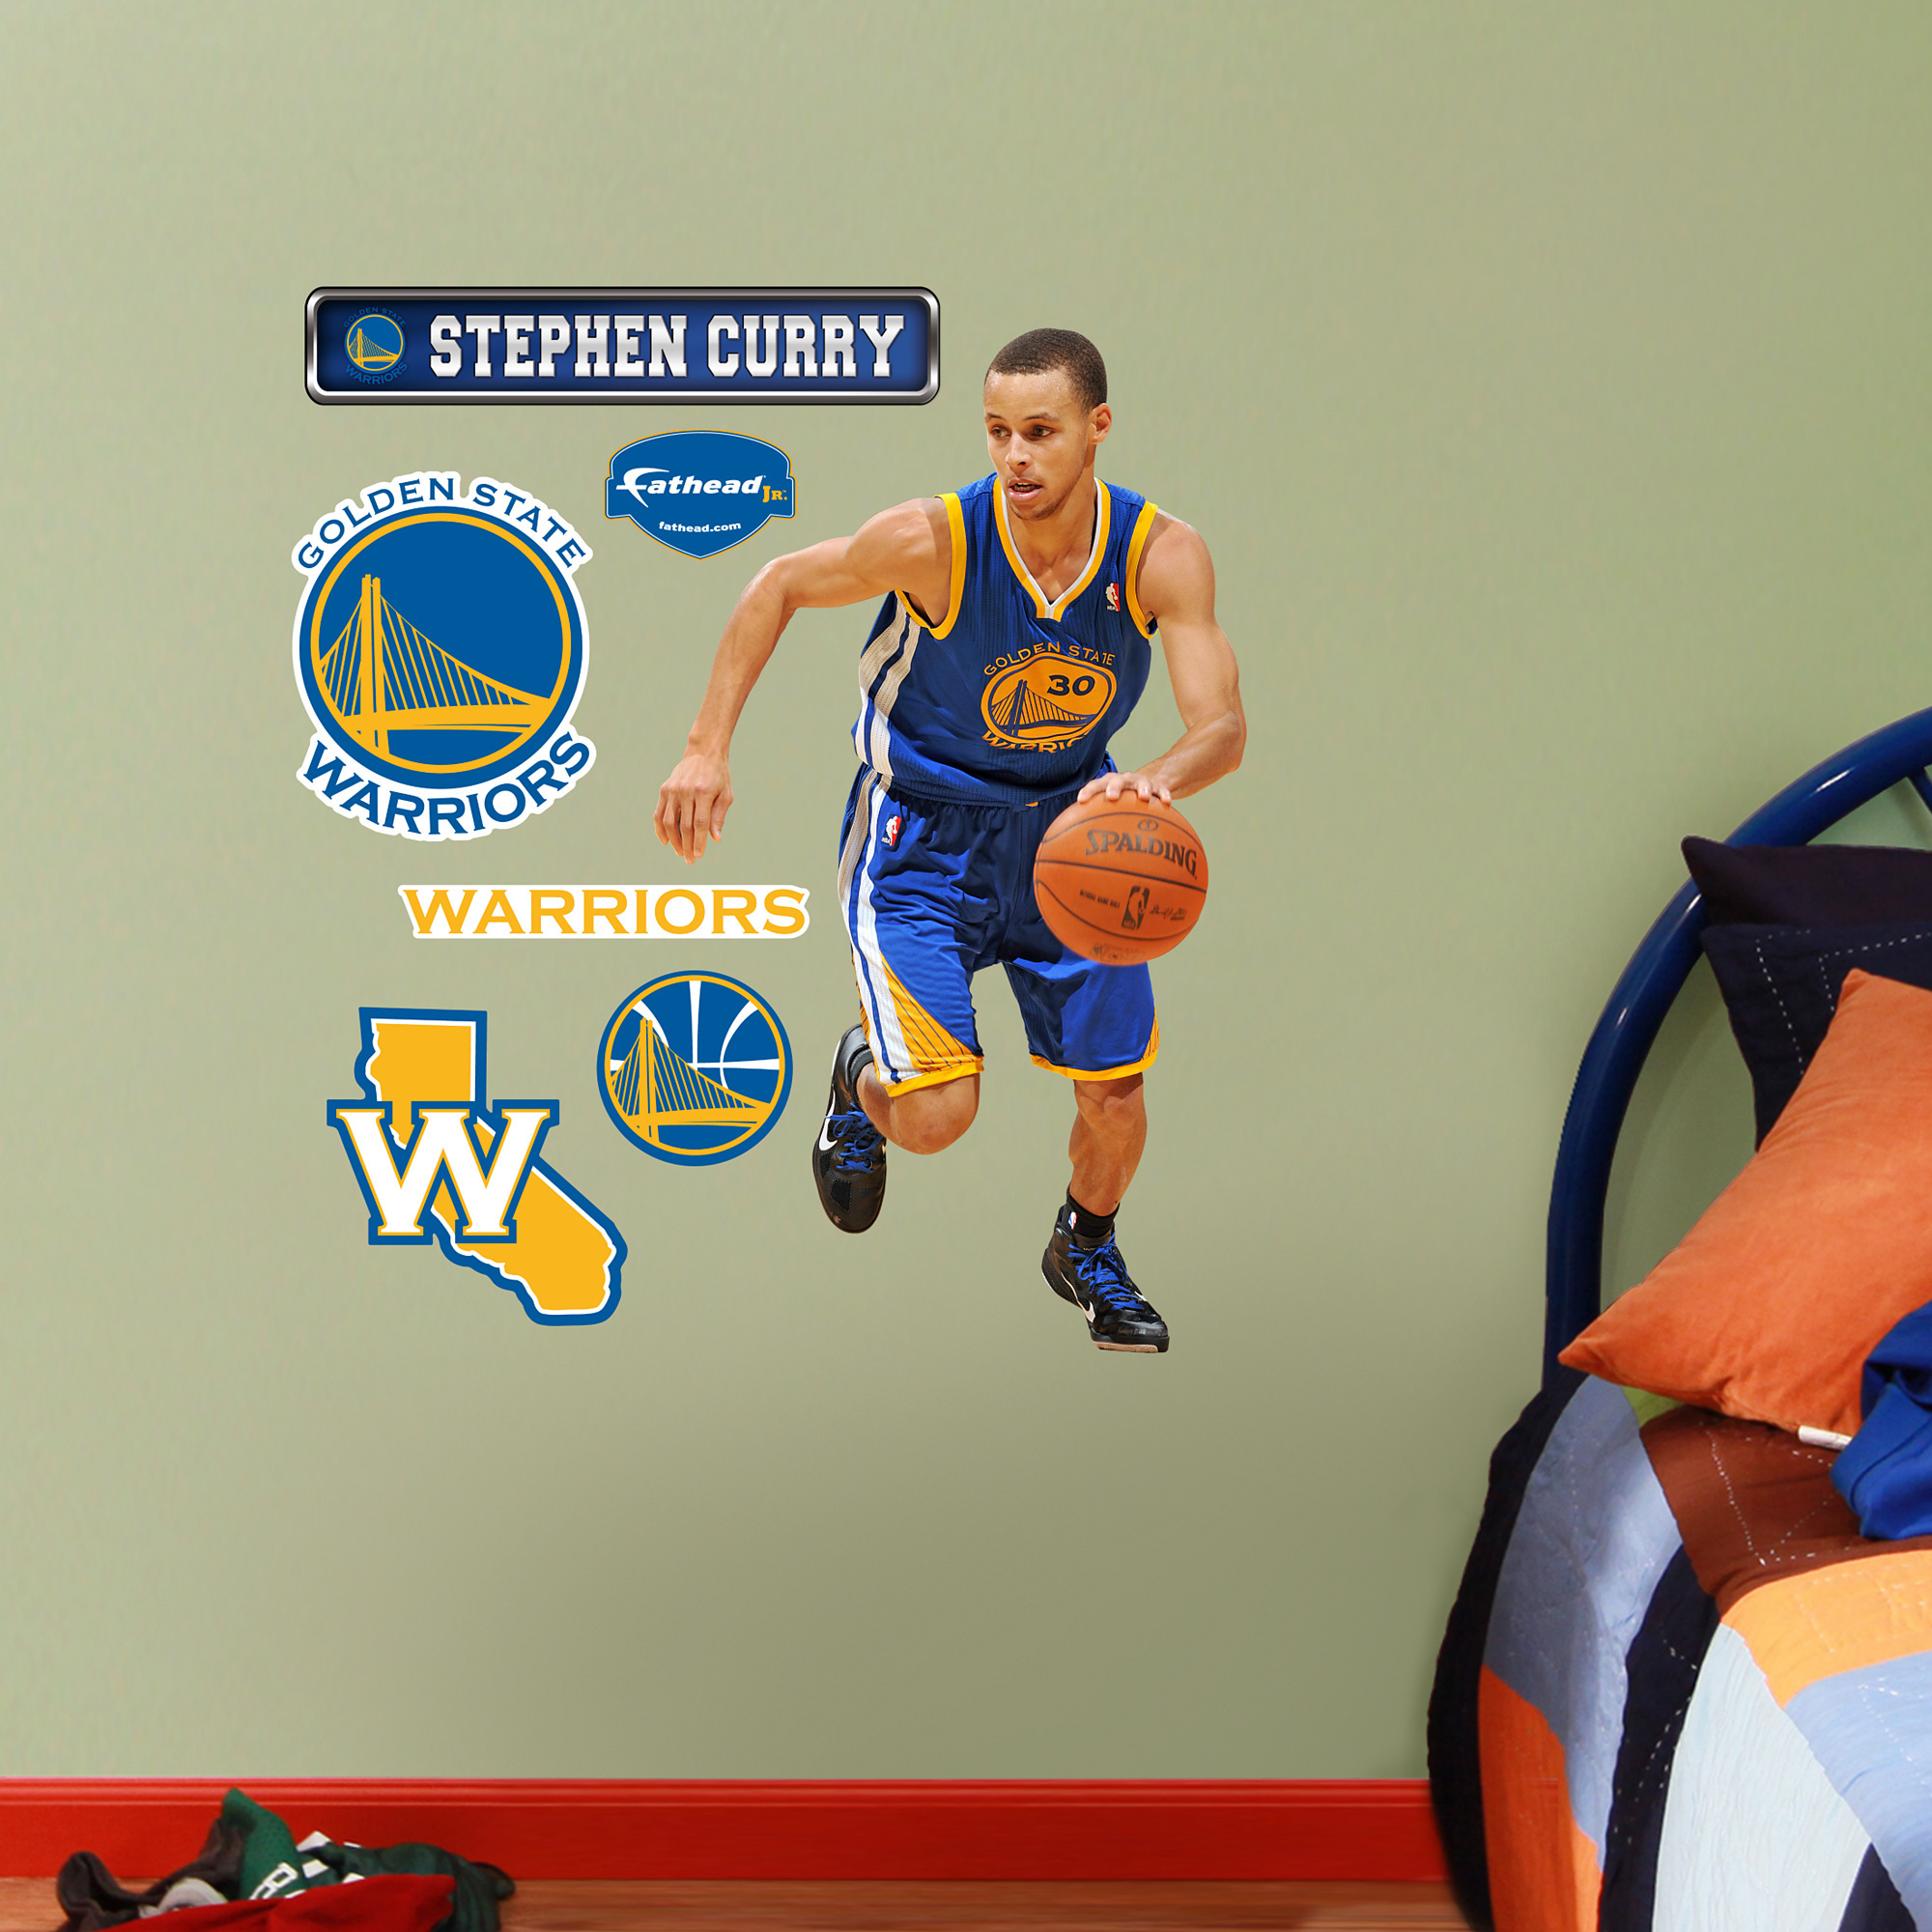 Fathead jr stephen curry wall decals